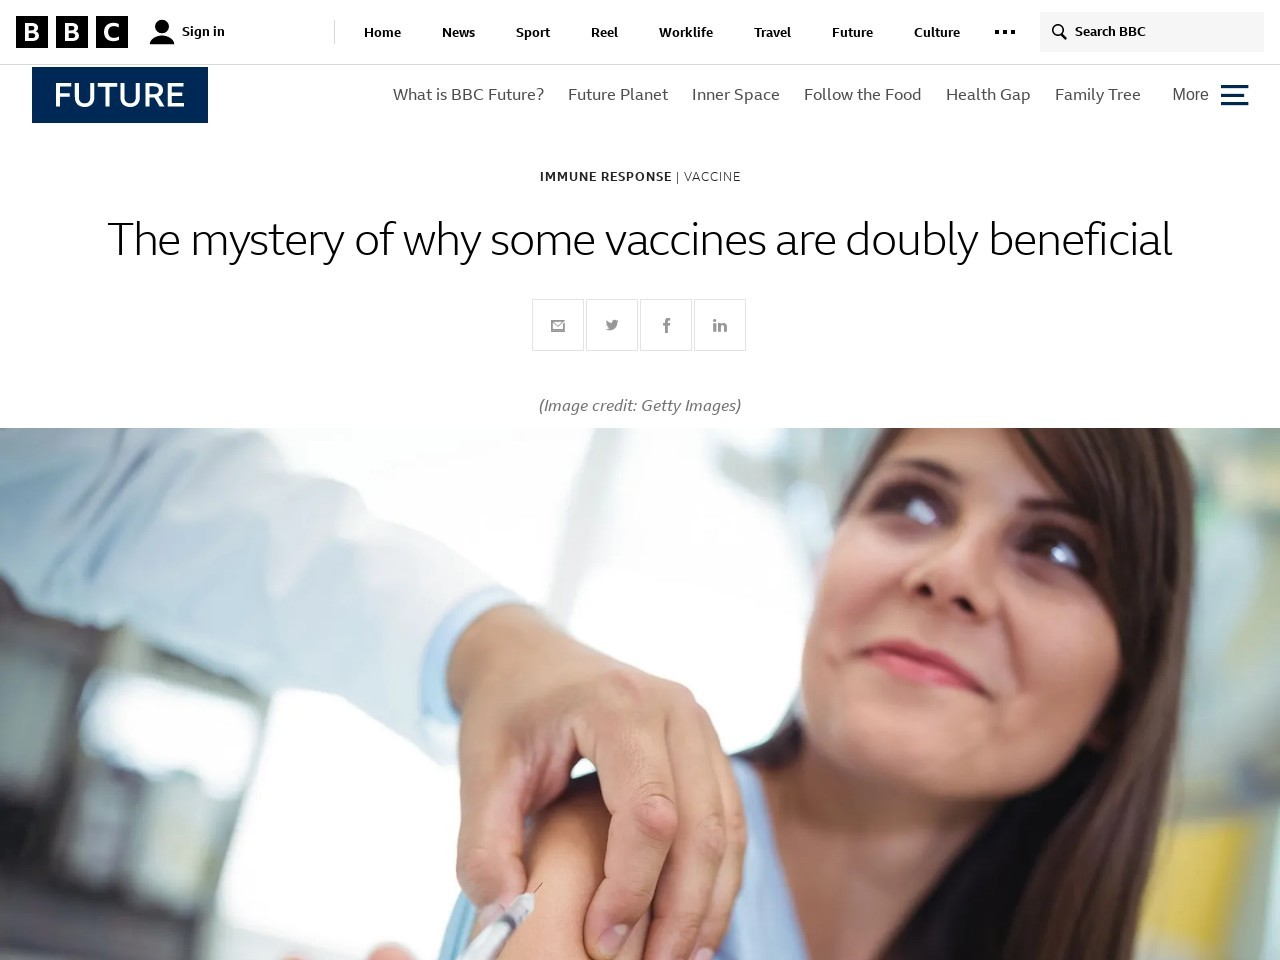 The mystery of why some vaccines are doubly beneficial